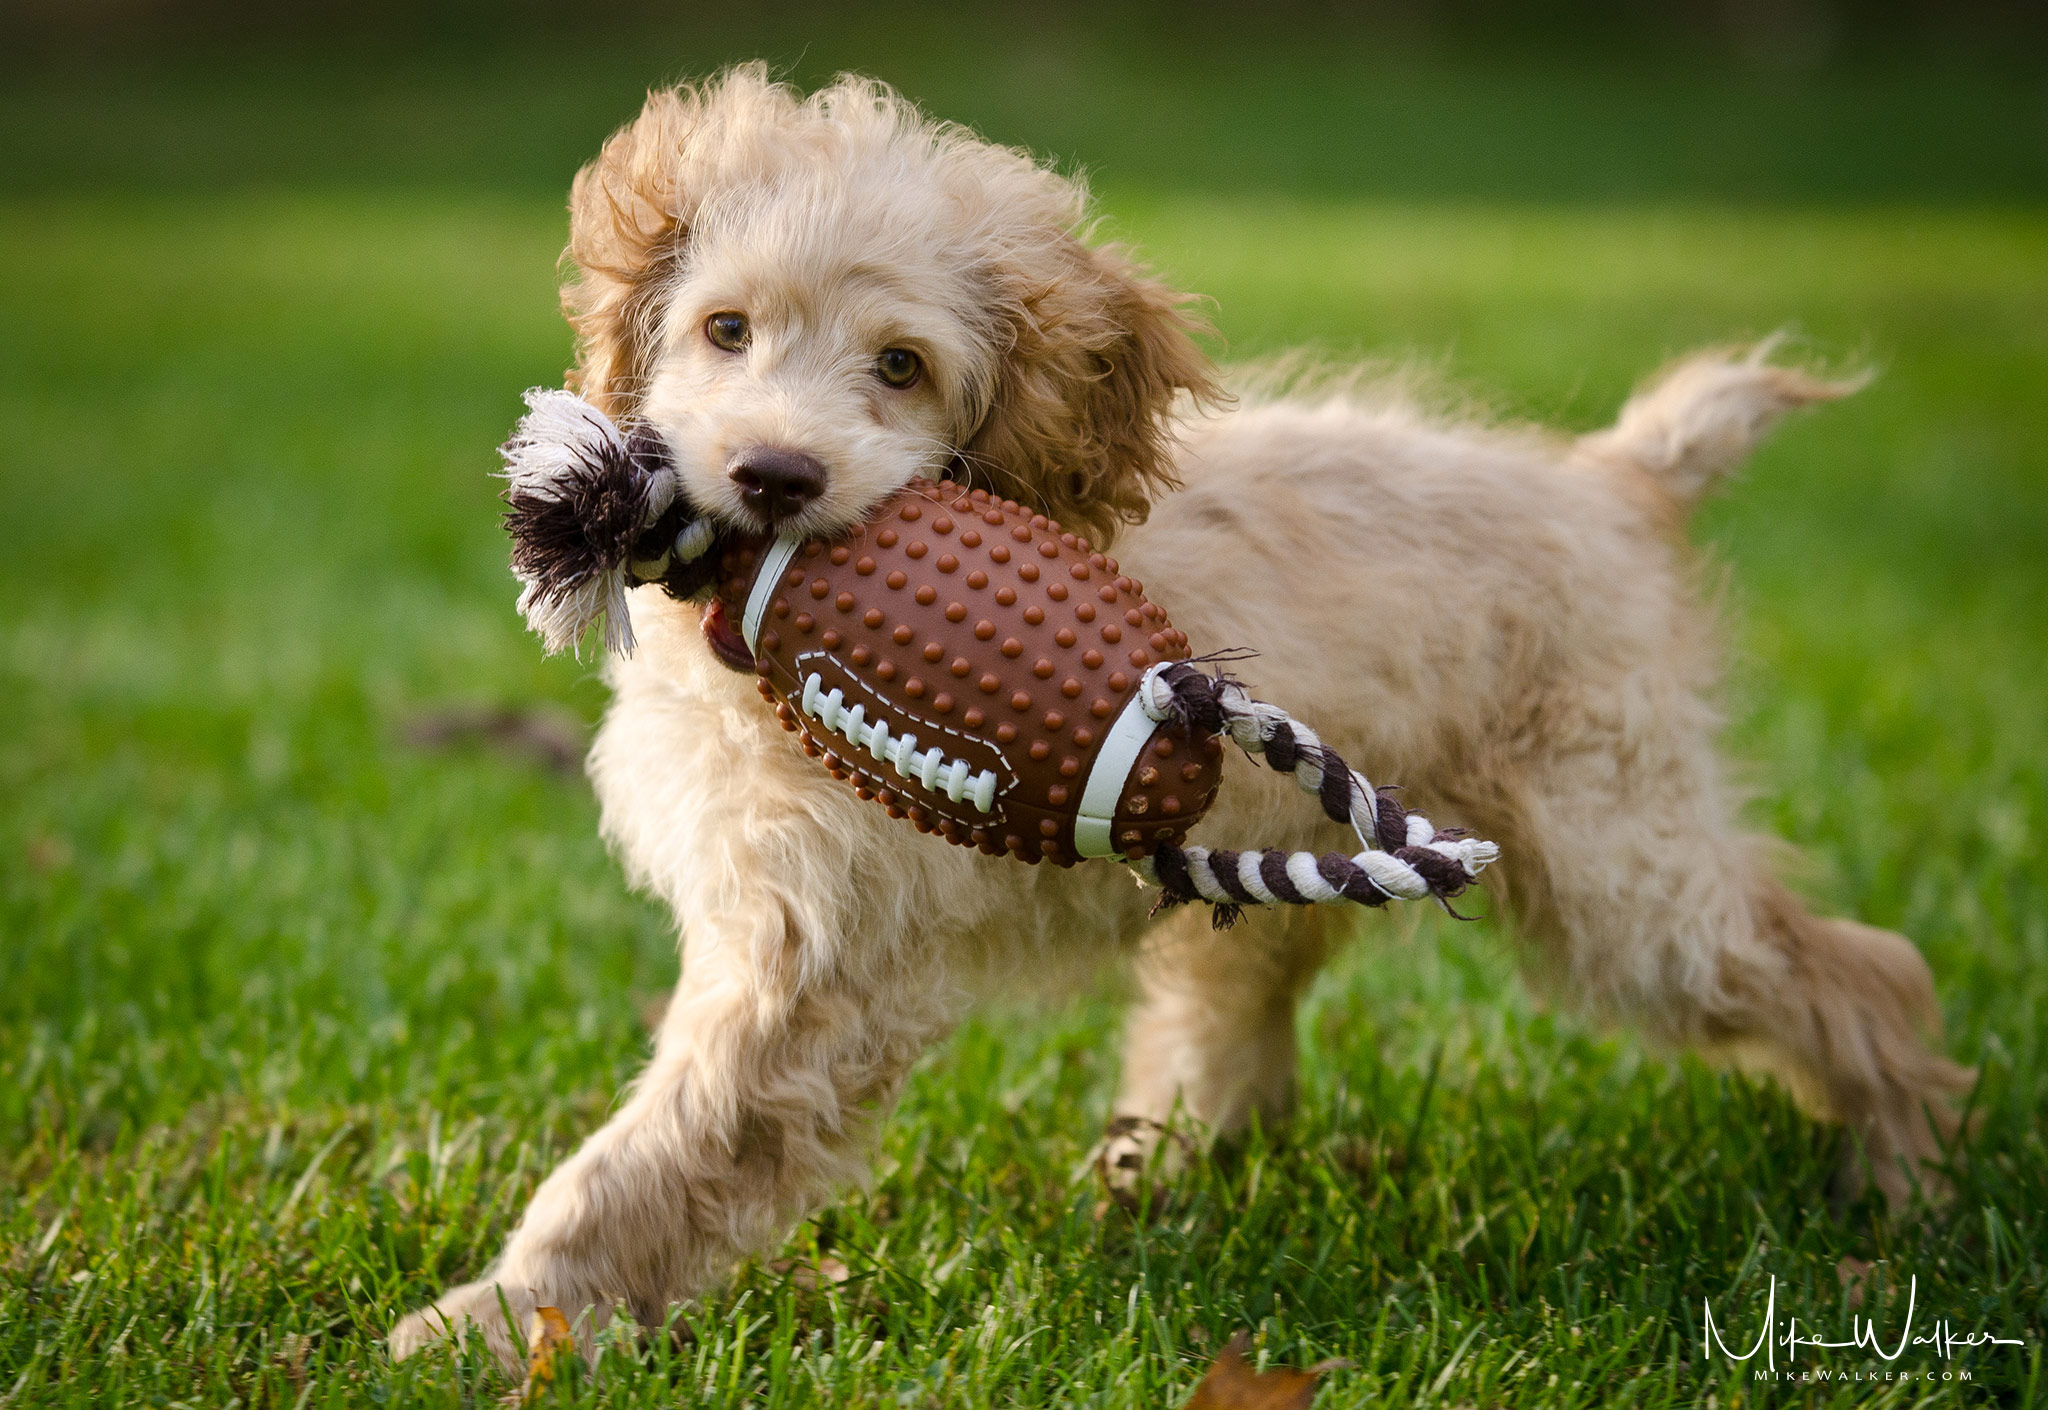 Jovi with Football Pet Photography © Mike Walker